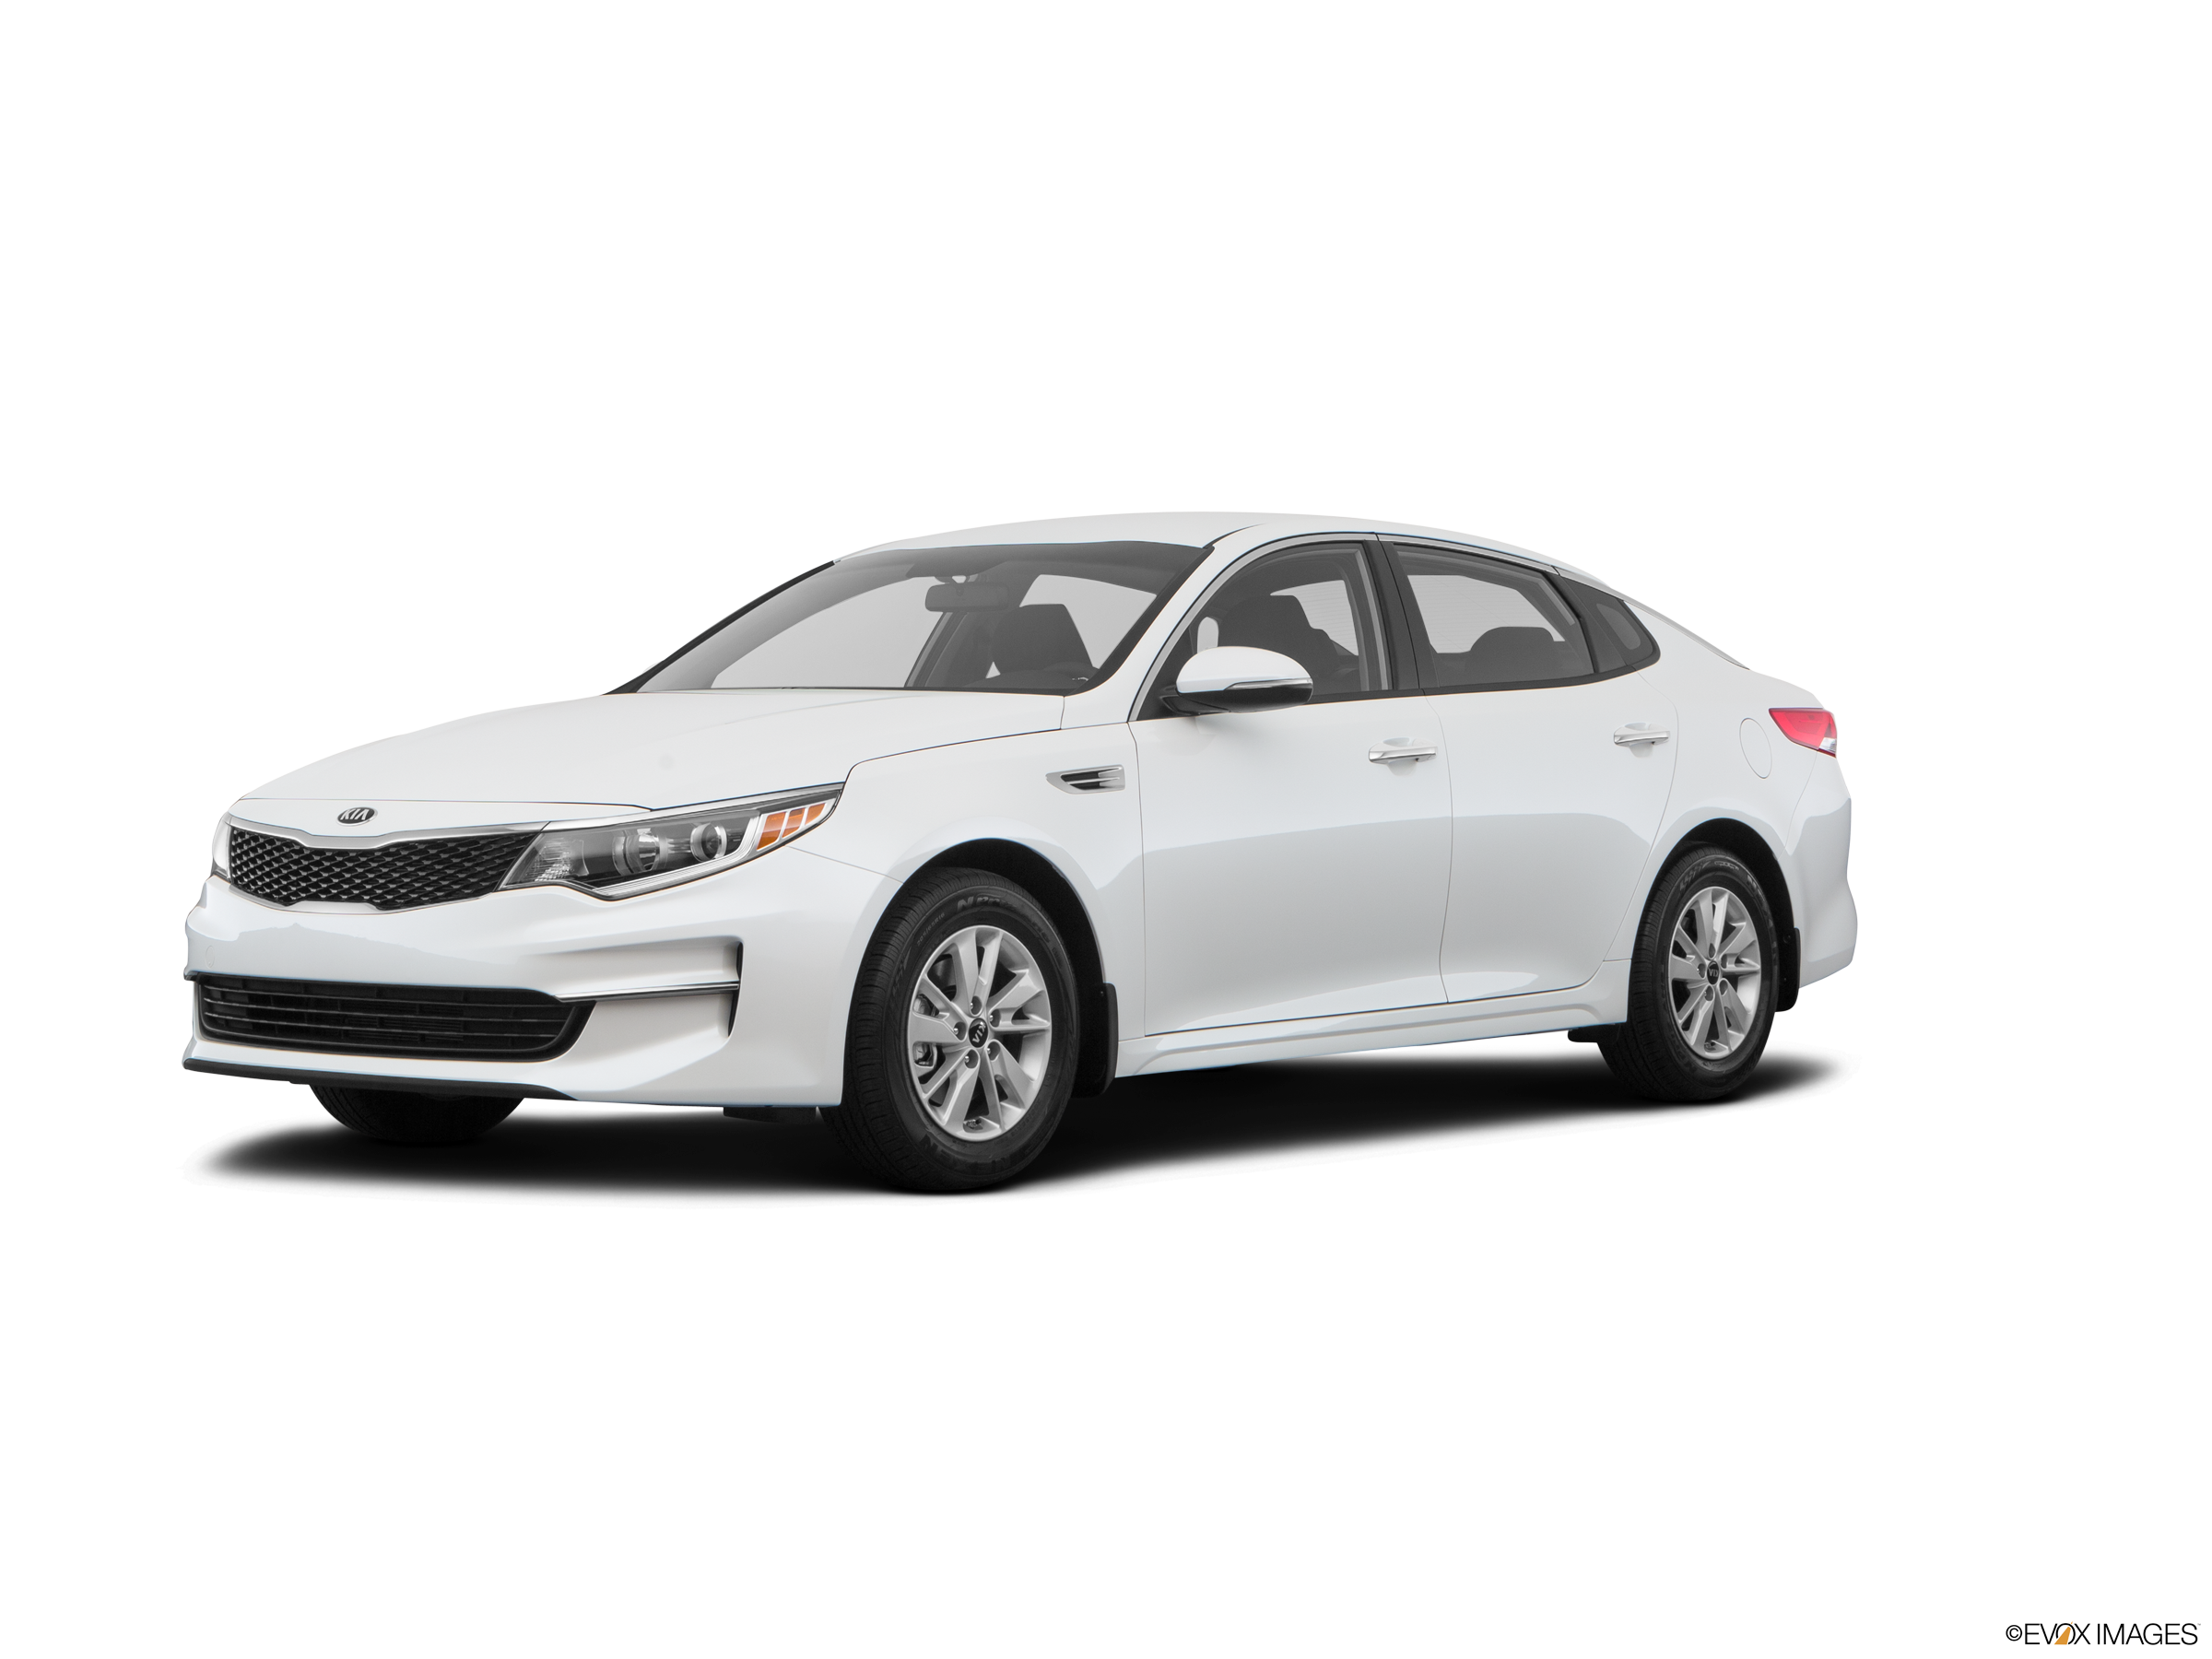 10 Best Sedans Under $25,000 - 2018 Kia Optima